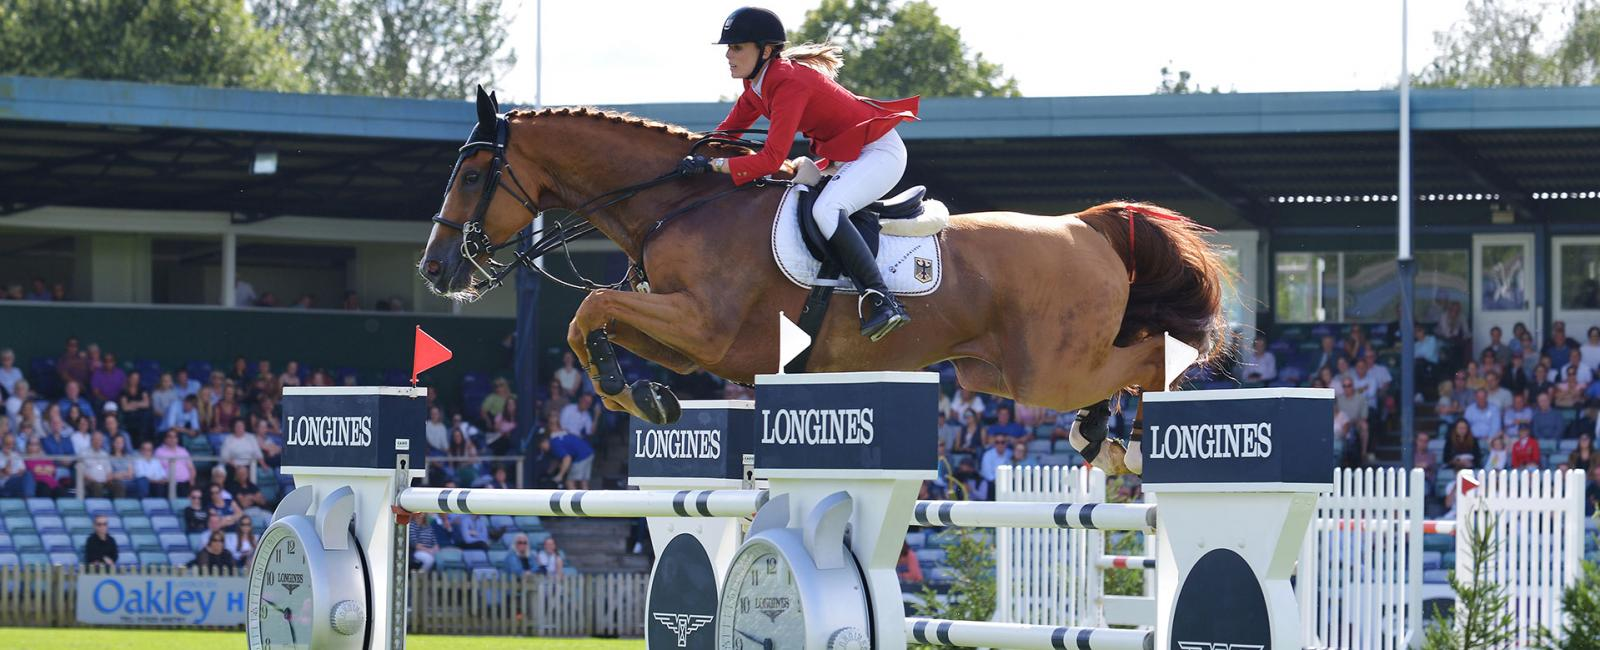 The Longines Royal International Horse Show 2016;Jumping;2016